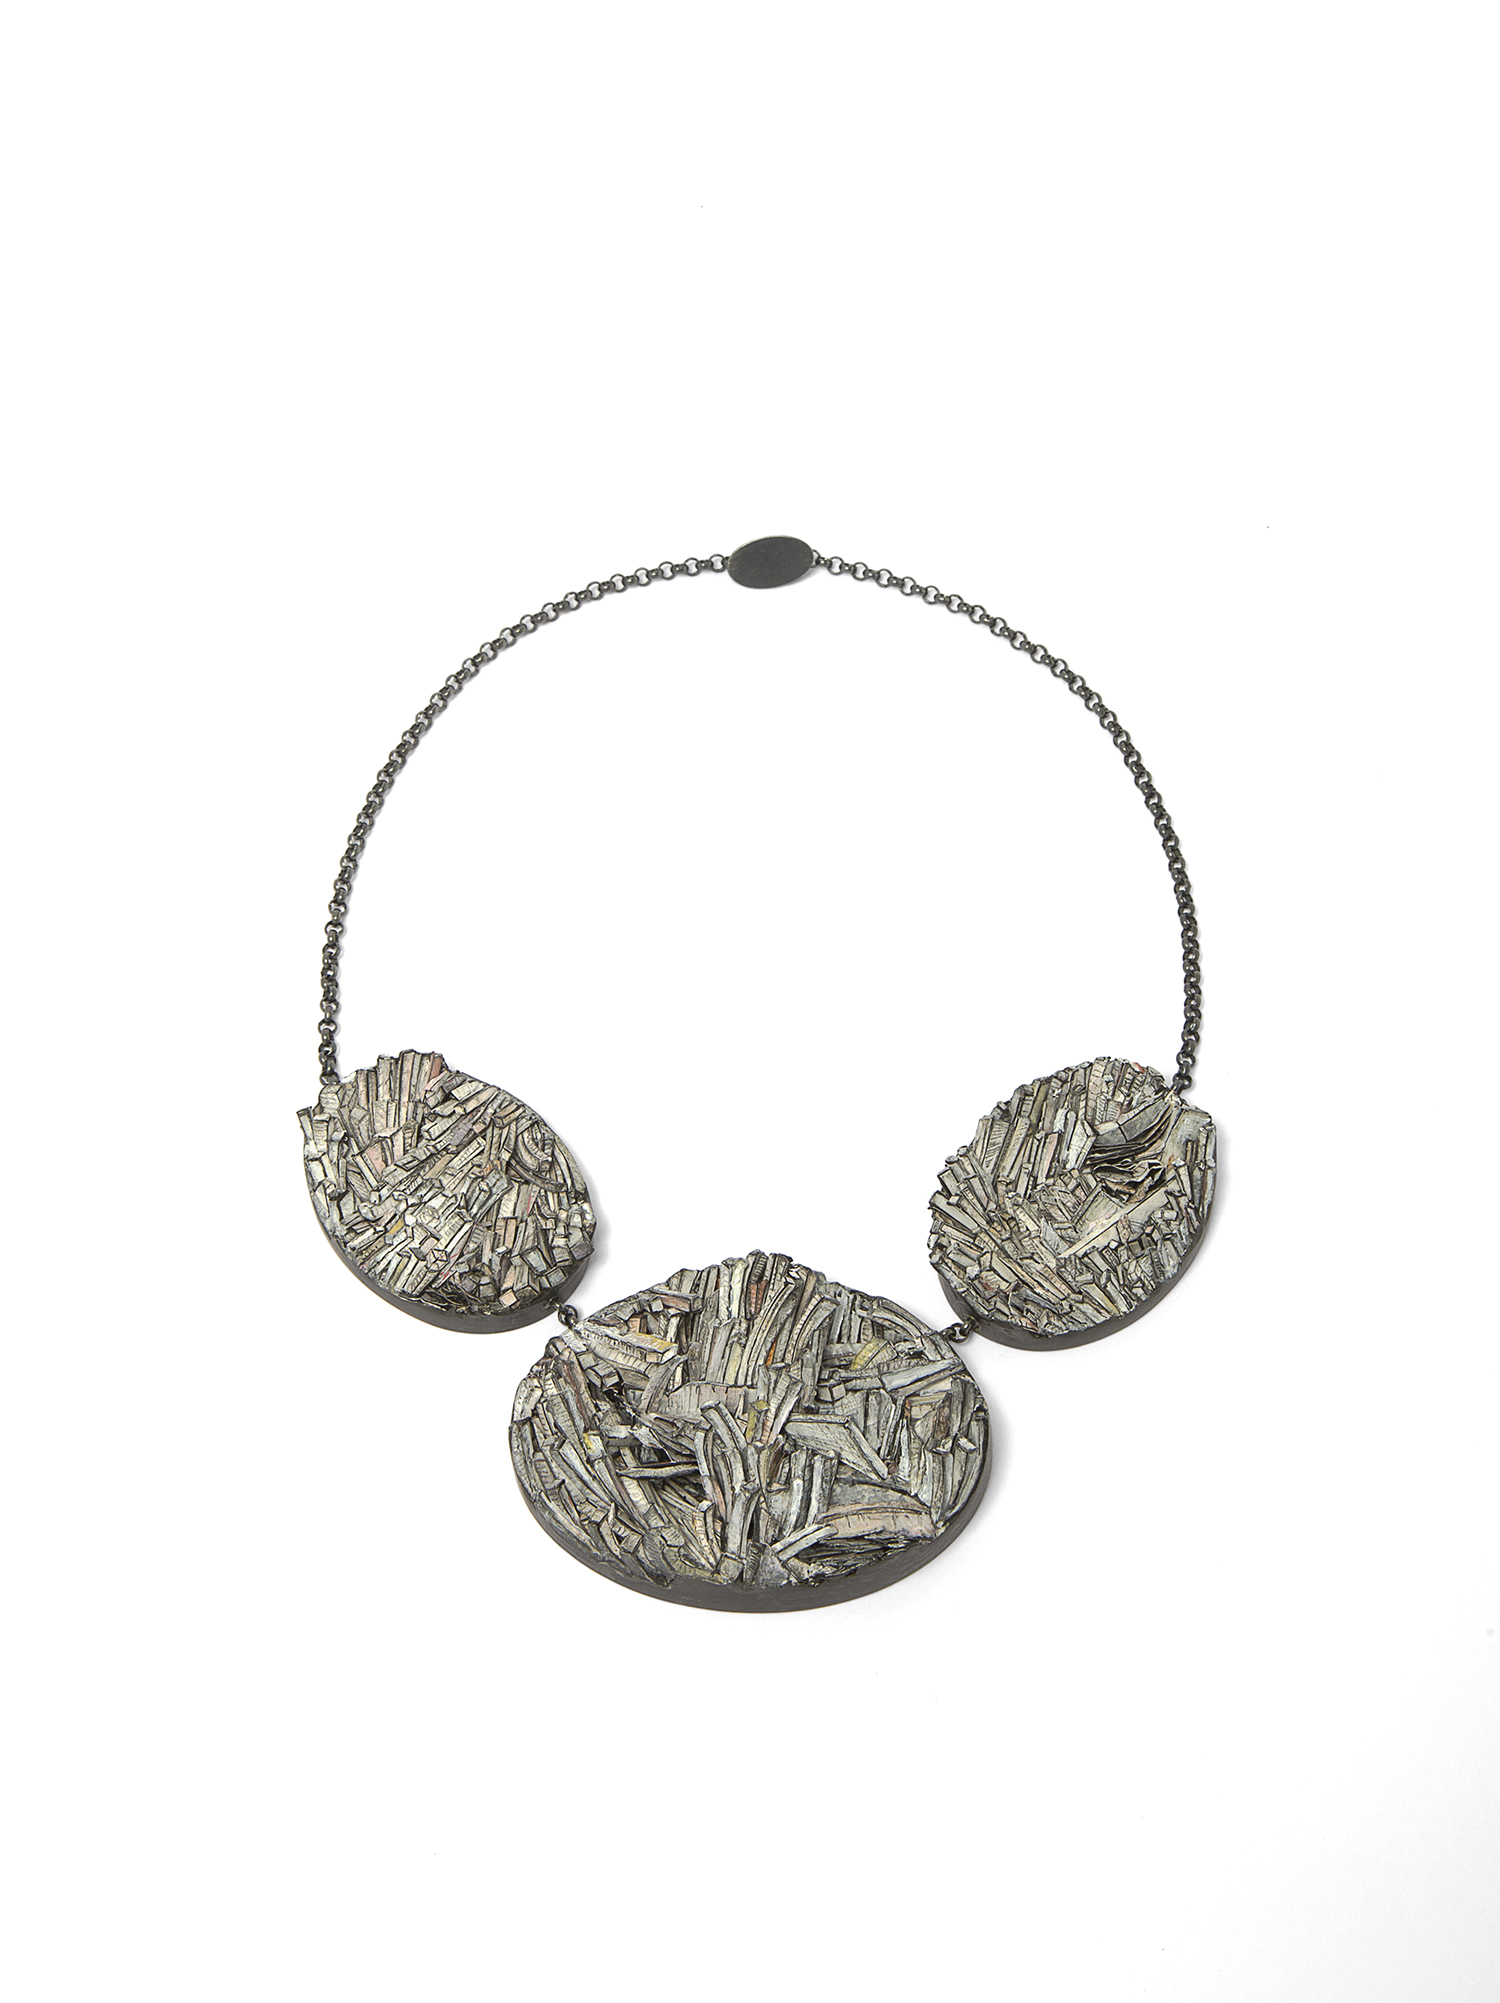 Untitled | Necklace | 2017 | Paper, paint, silver, wood, graphite | 300X350X35mm